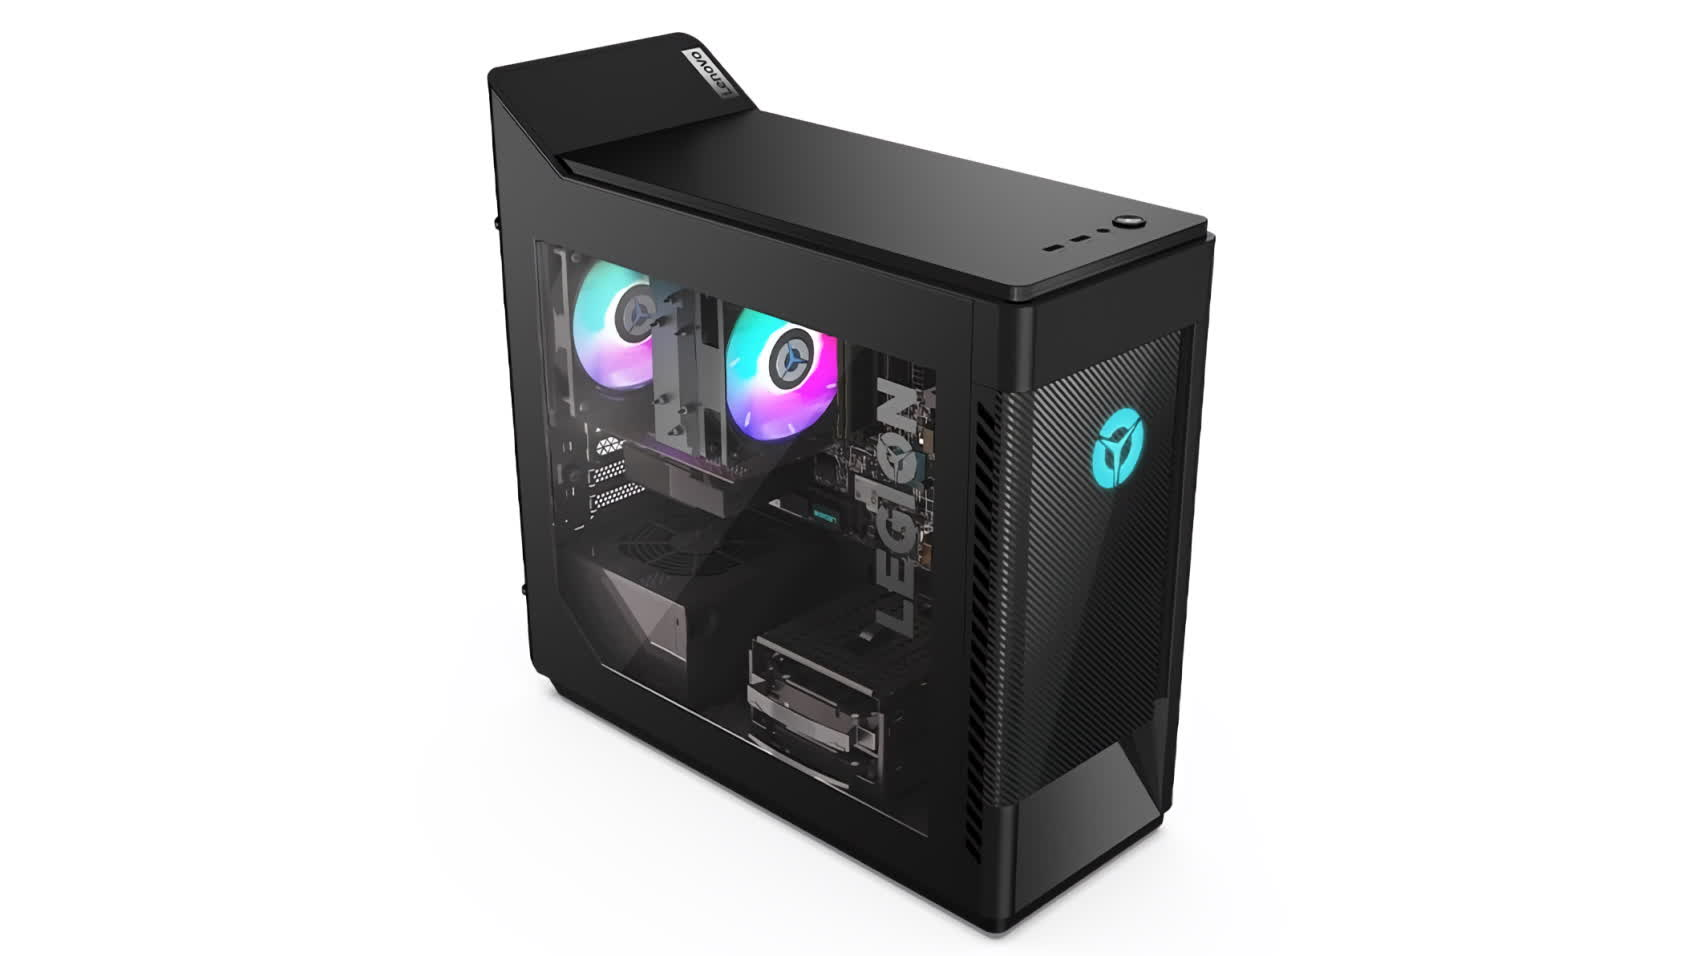 Lenovo's RTX 3070-powered Legion Tower 5i gaming rig can be yours for under $1,600